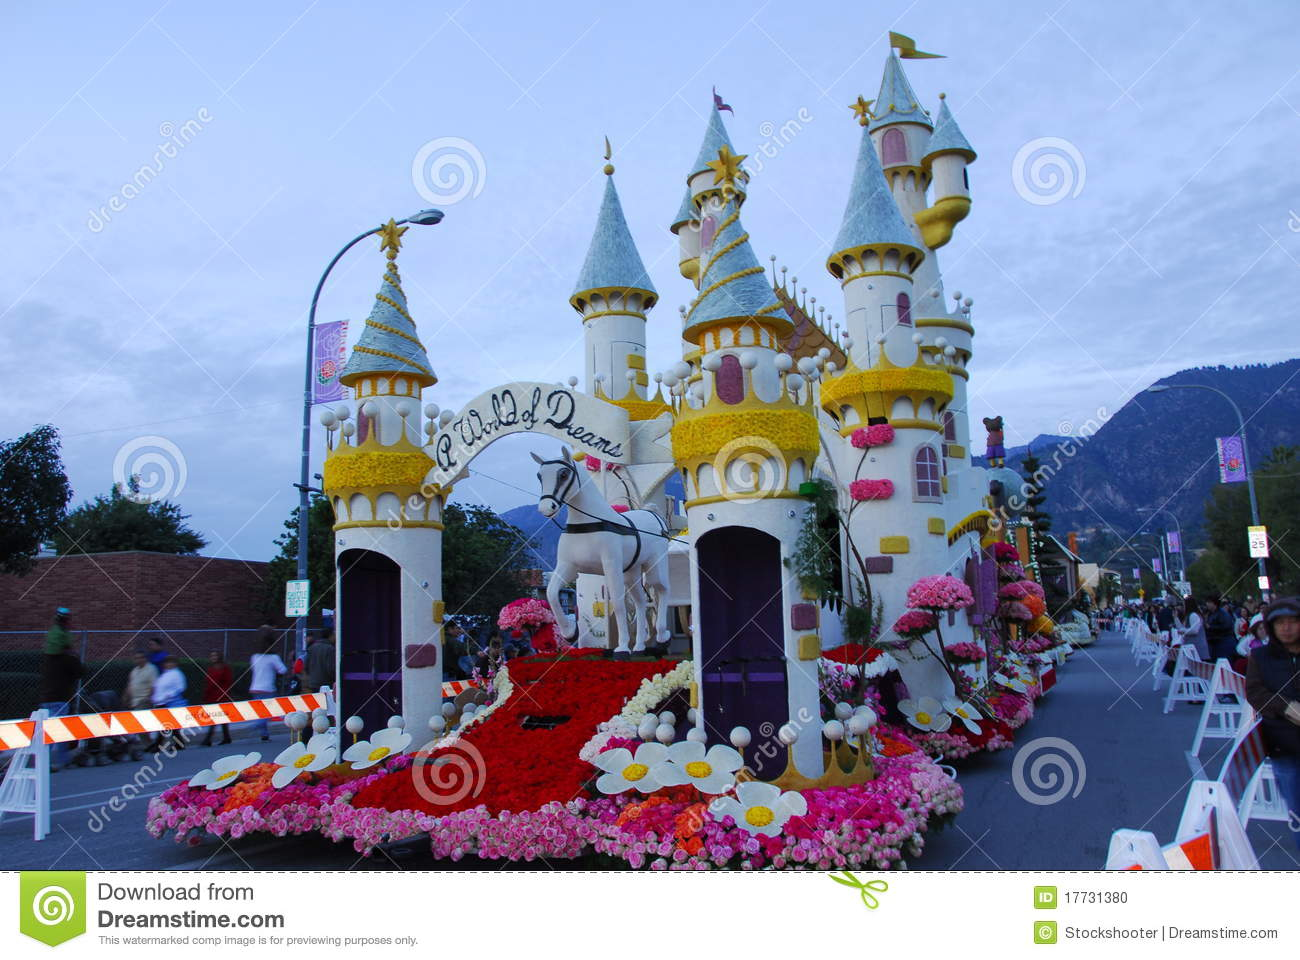 Honda Of Pasadena >> World Of Dreams Castle Float At The 122nd Tourname Editorial Image - Image: 17731380